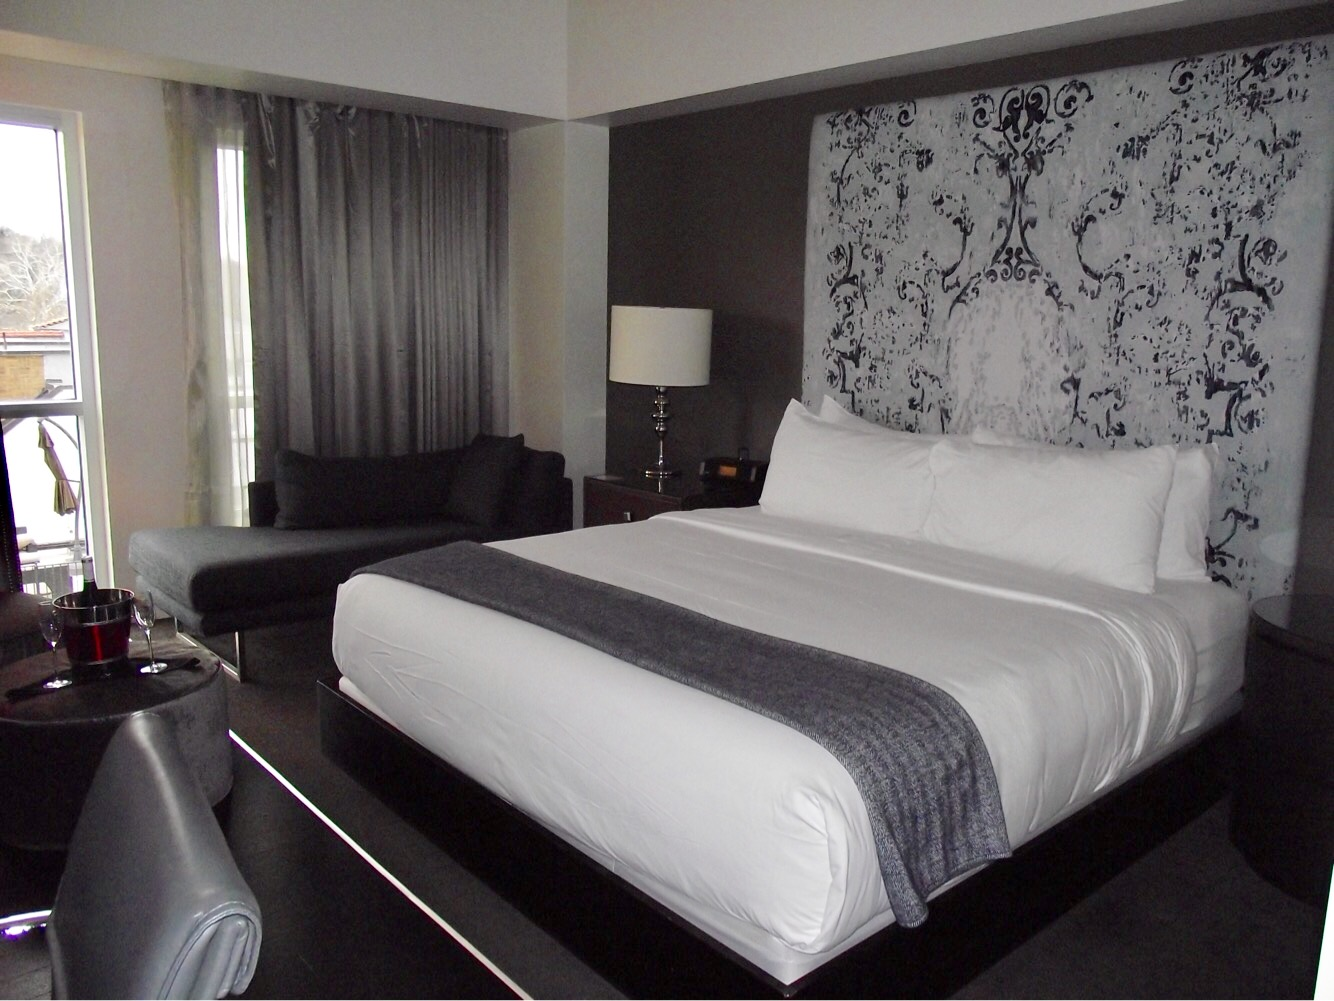 Hotel Sorella room (Photo by LoudPen)